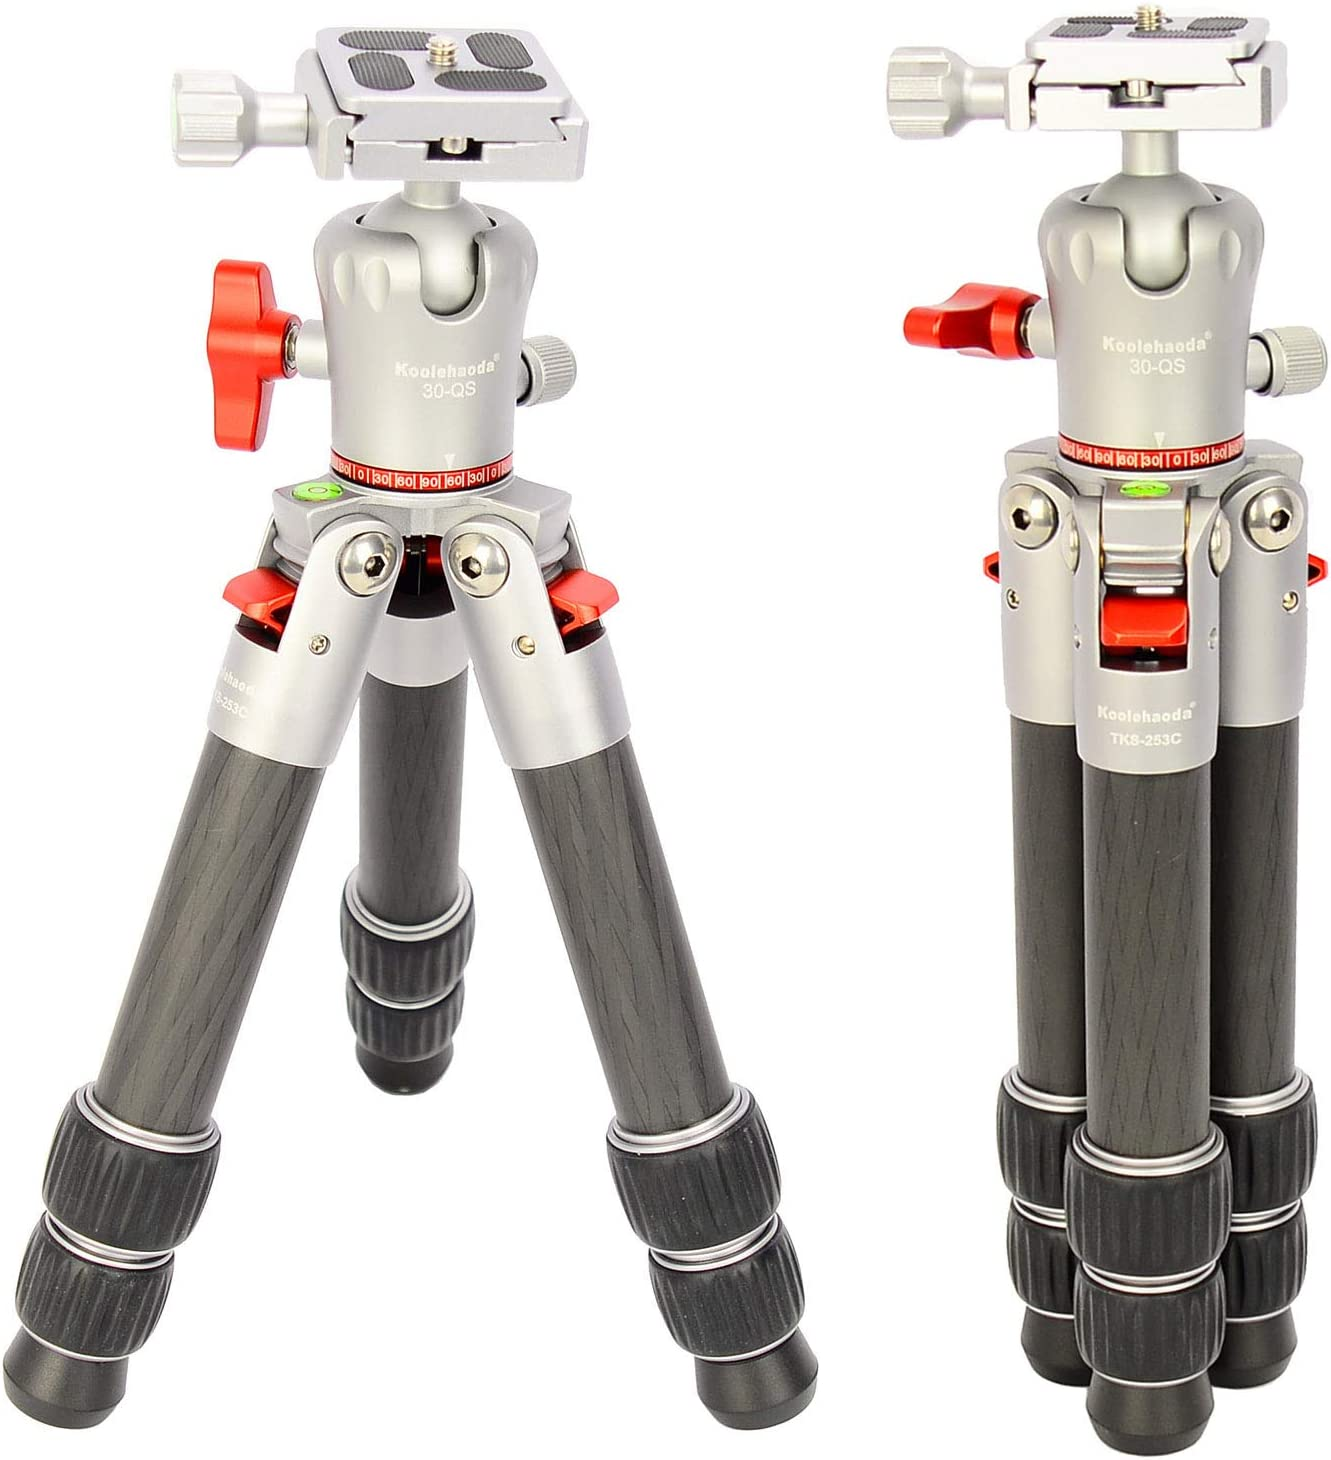 koolehaoda Portable carbon fiber mini tripod,Weighs only 1.5 pounds and Supports loads up to 22pounds(TKS-253C)